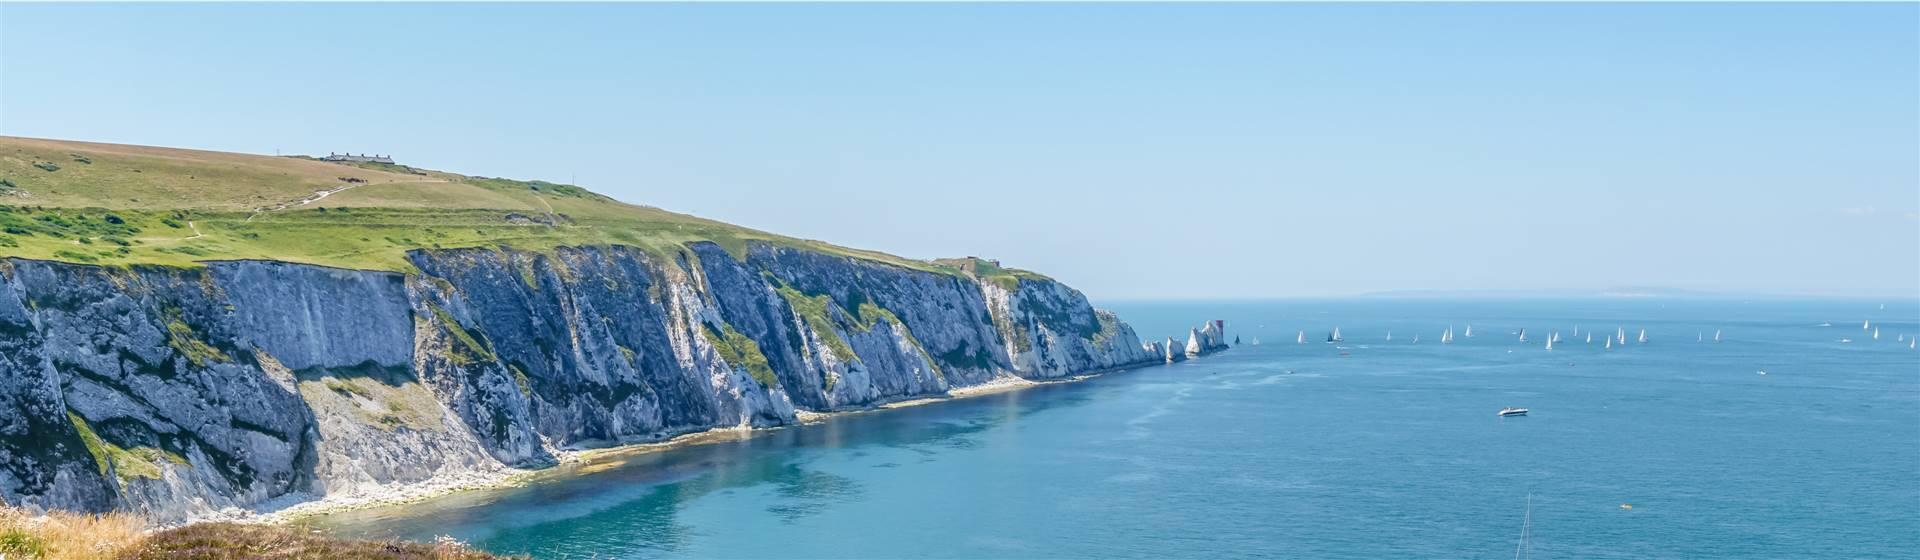 "<img src=""theneedles-shutterstock.jpeg"" alt=""The Needles - Isle of Wight""/>"